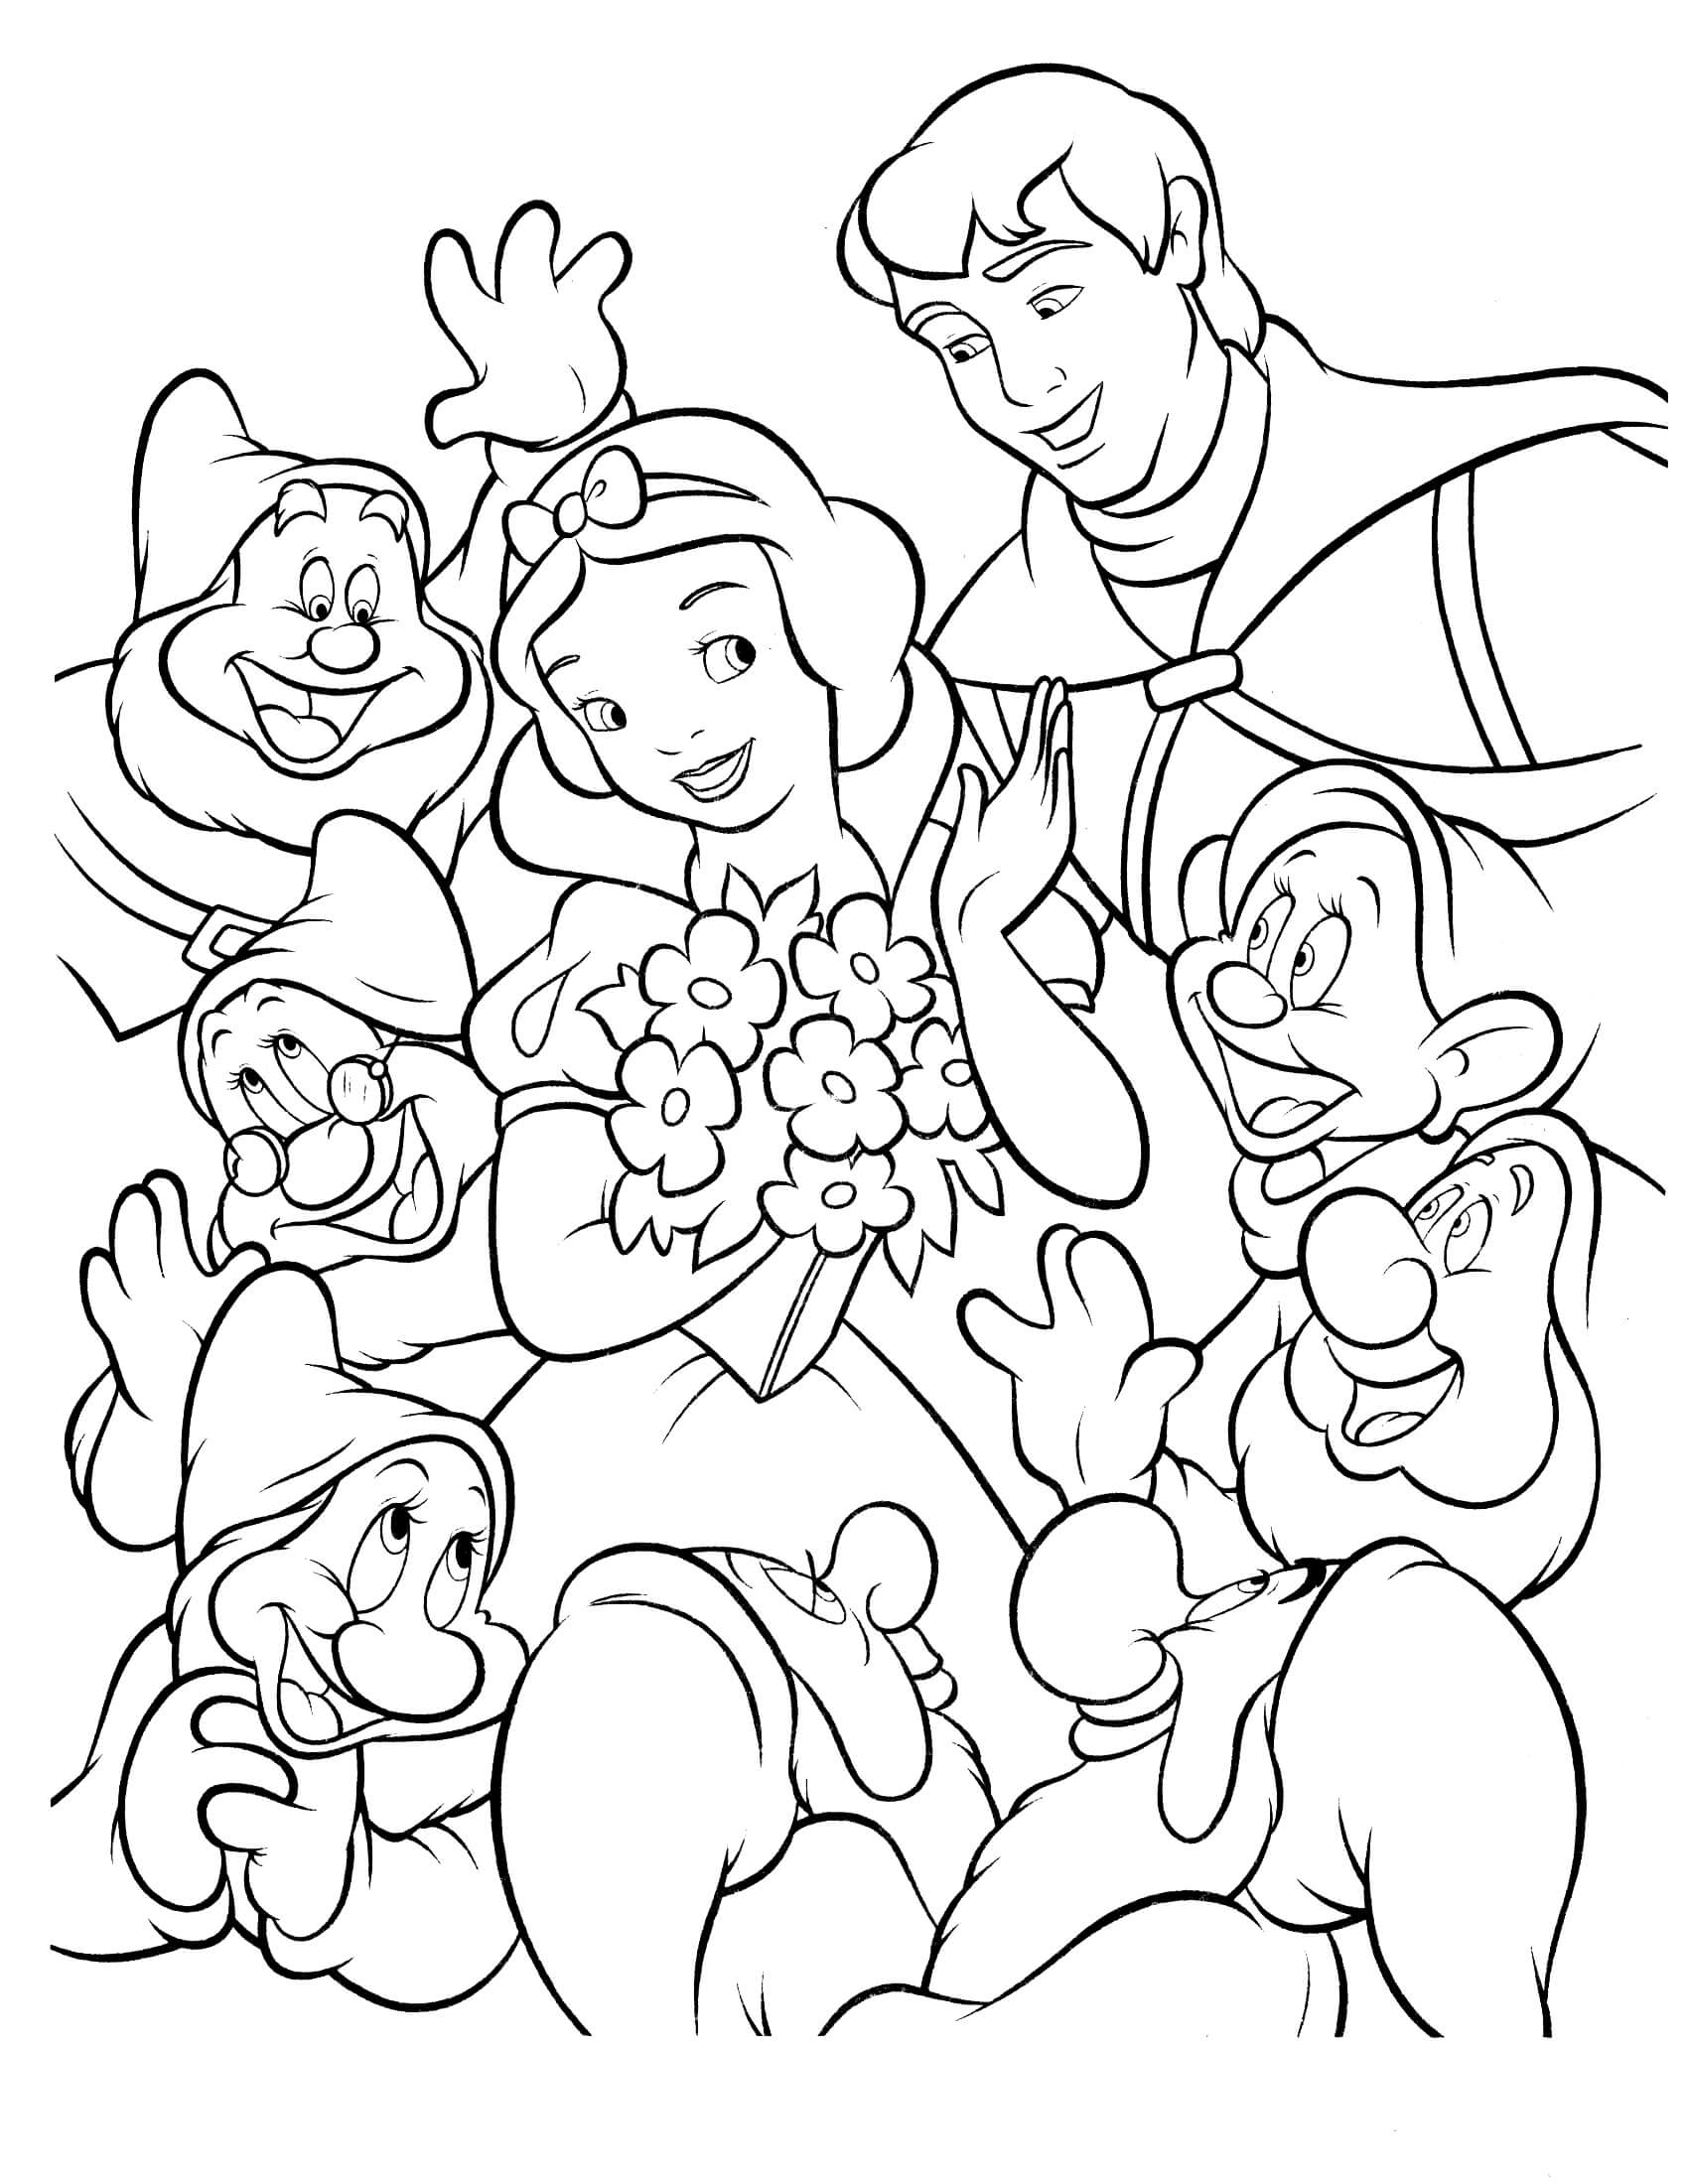 This is an image of Decisive Snow Coloring Page